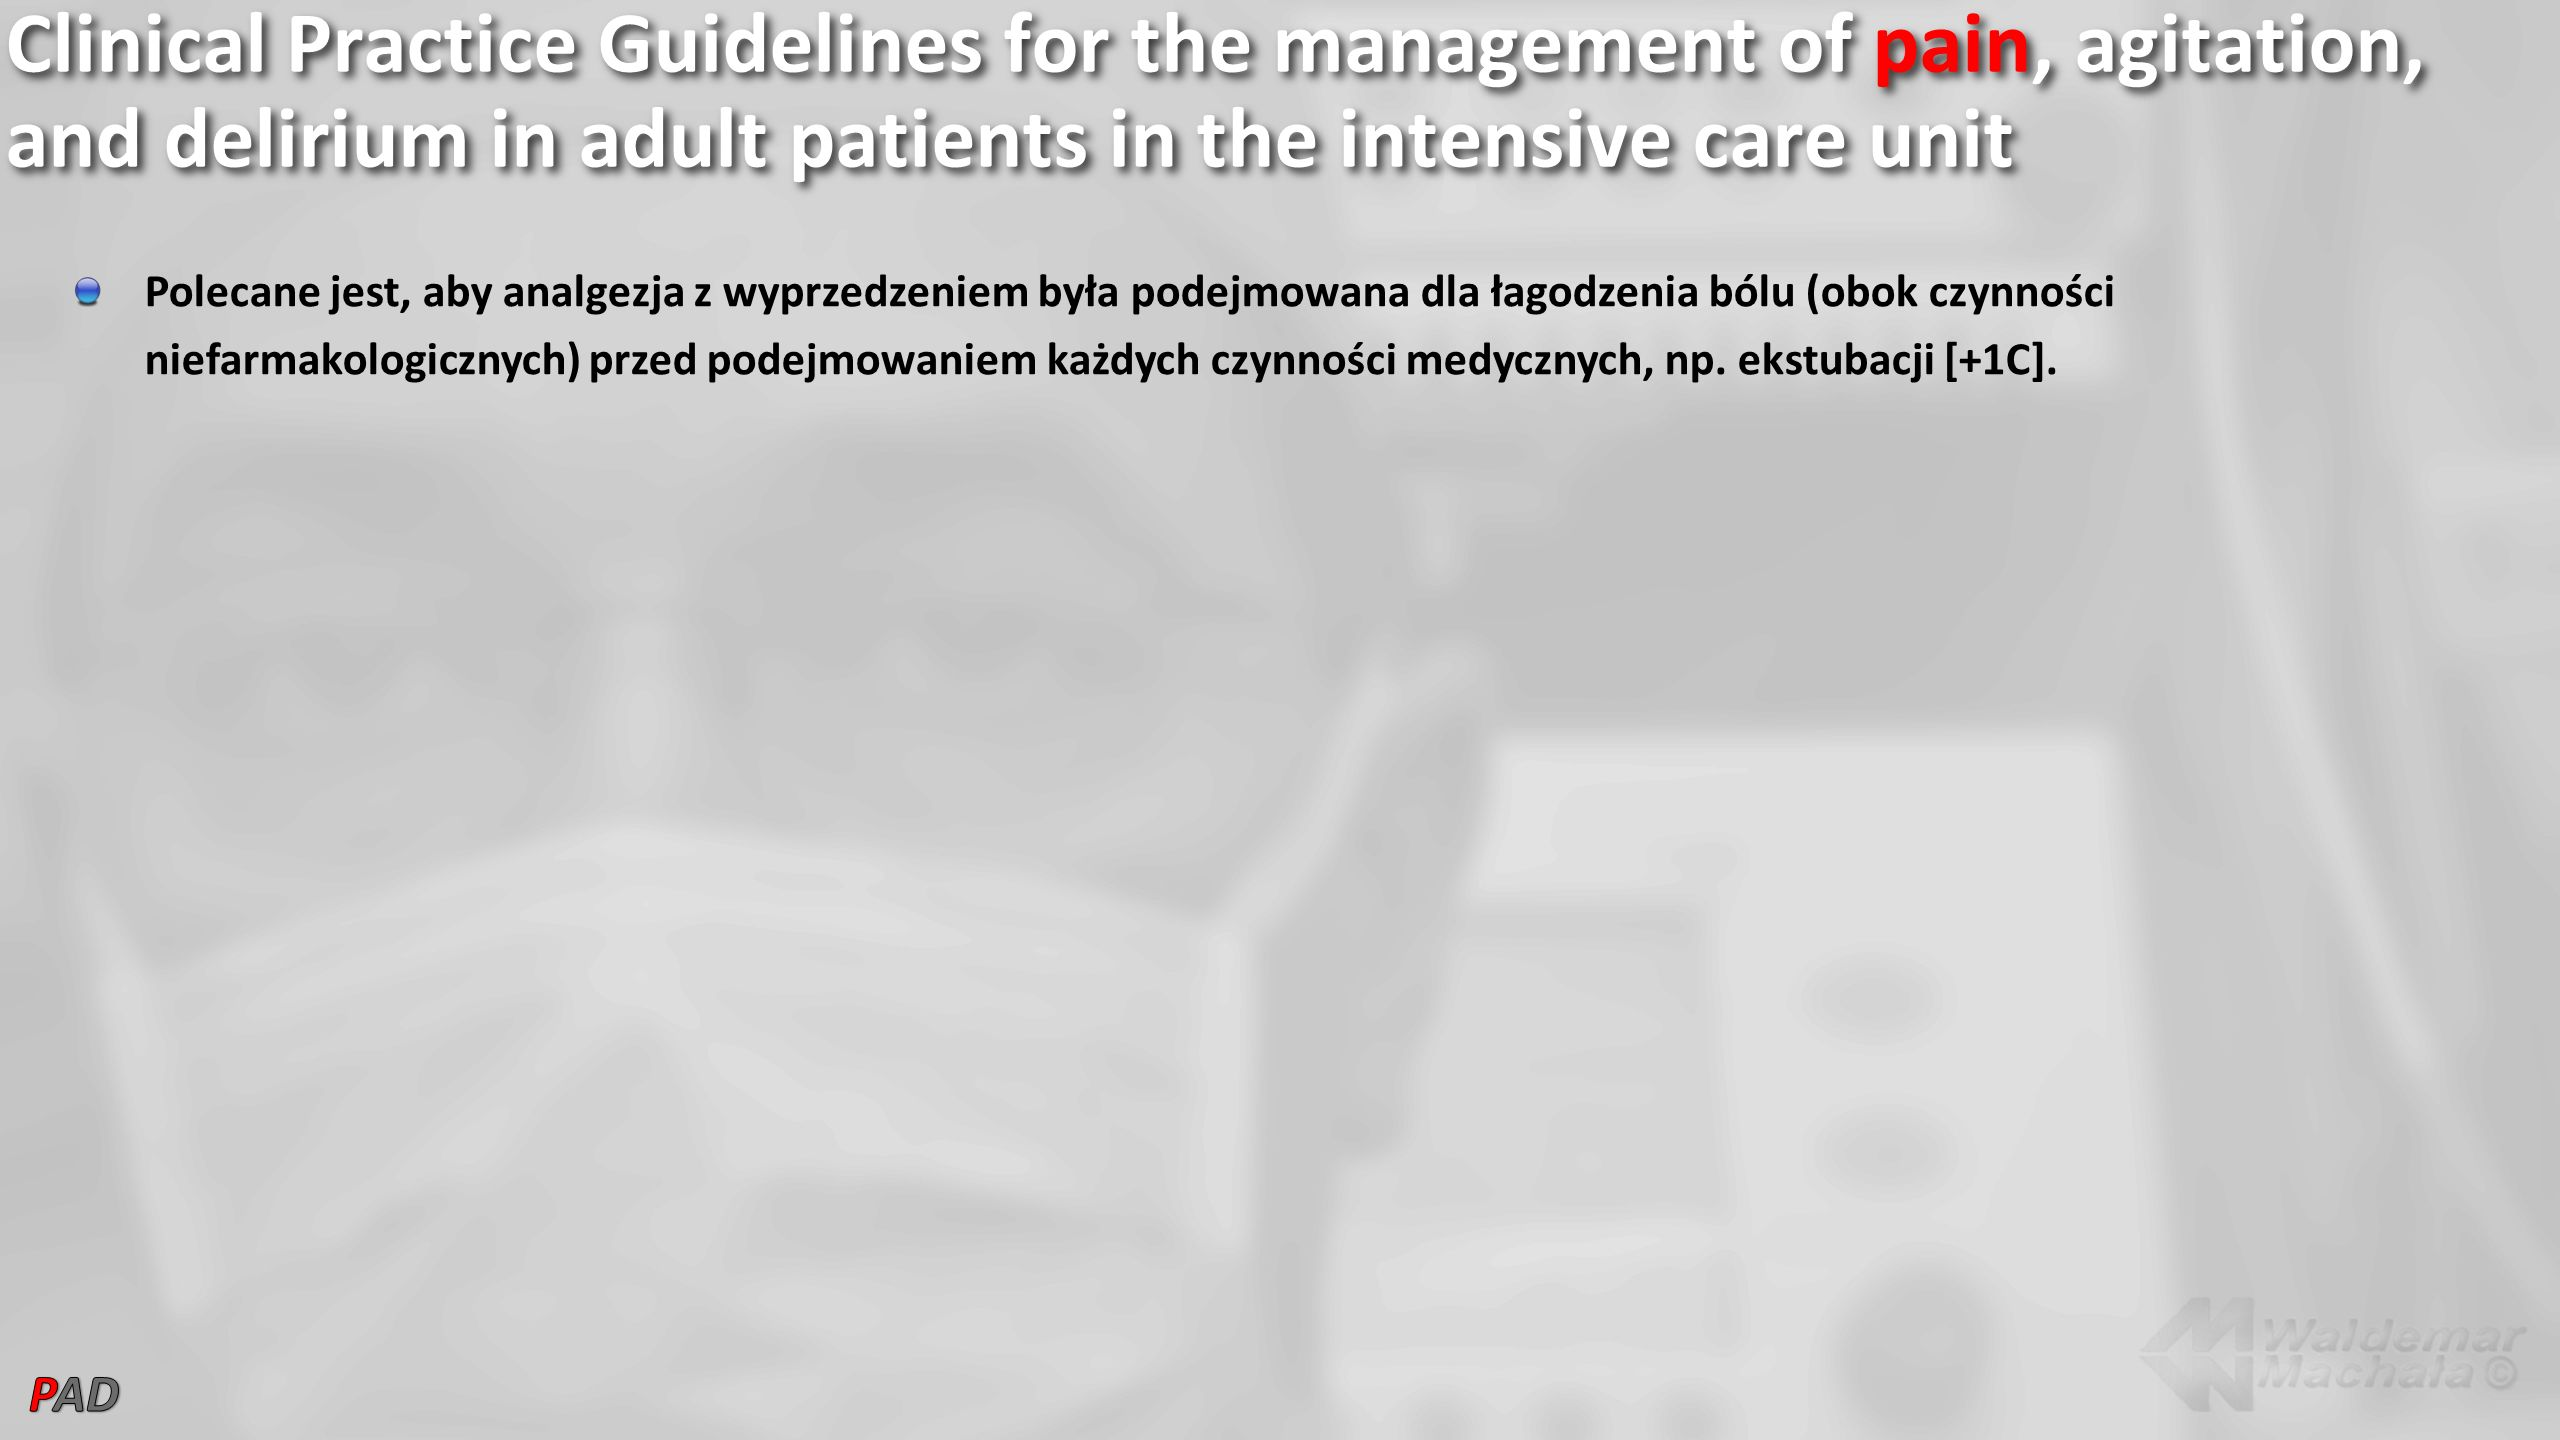 Clinical Practice Guidelines for the management of pain, agitation, and delirium in adult patients in the intensive care unit Polecane jest, aby analg